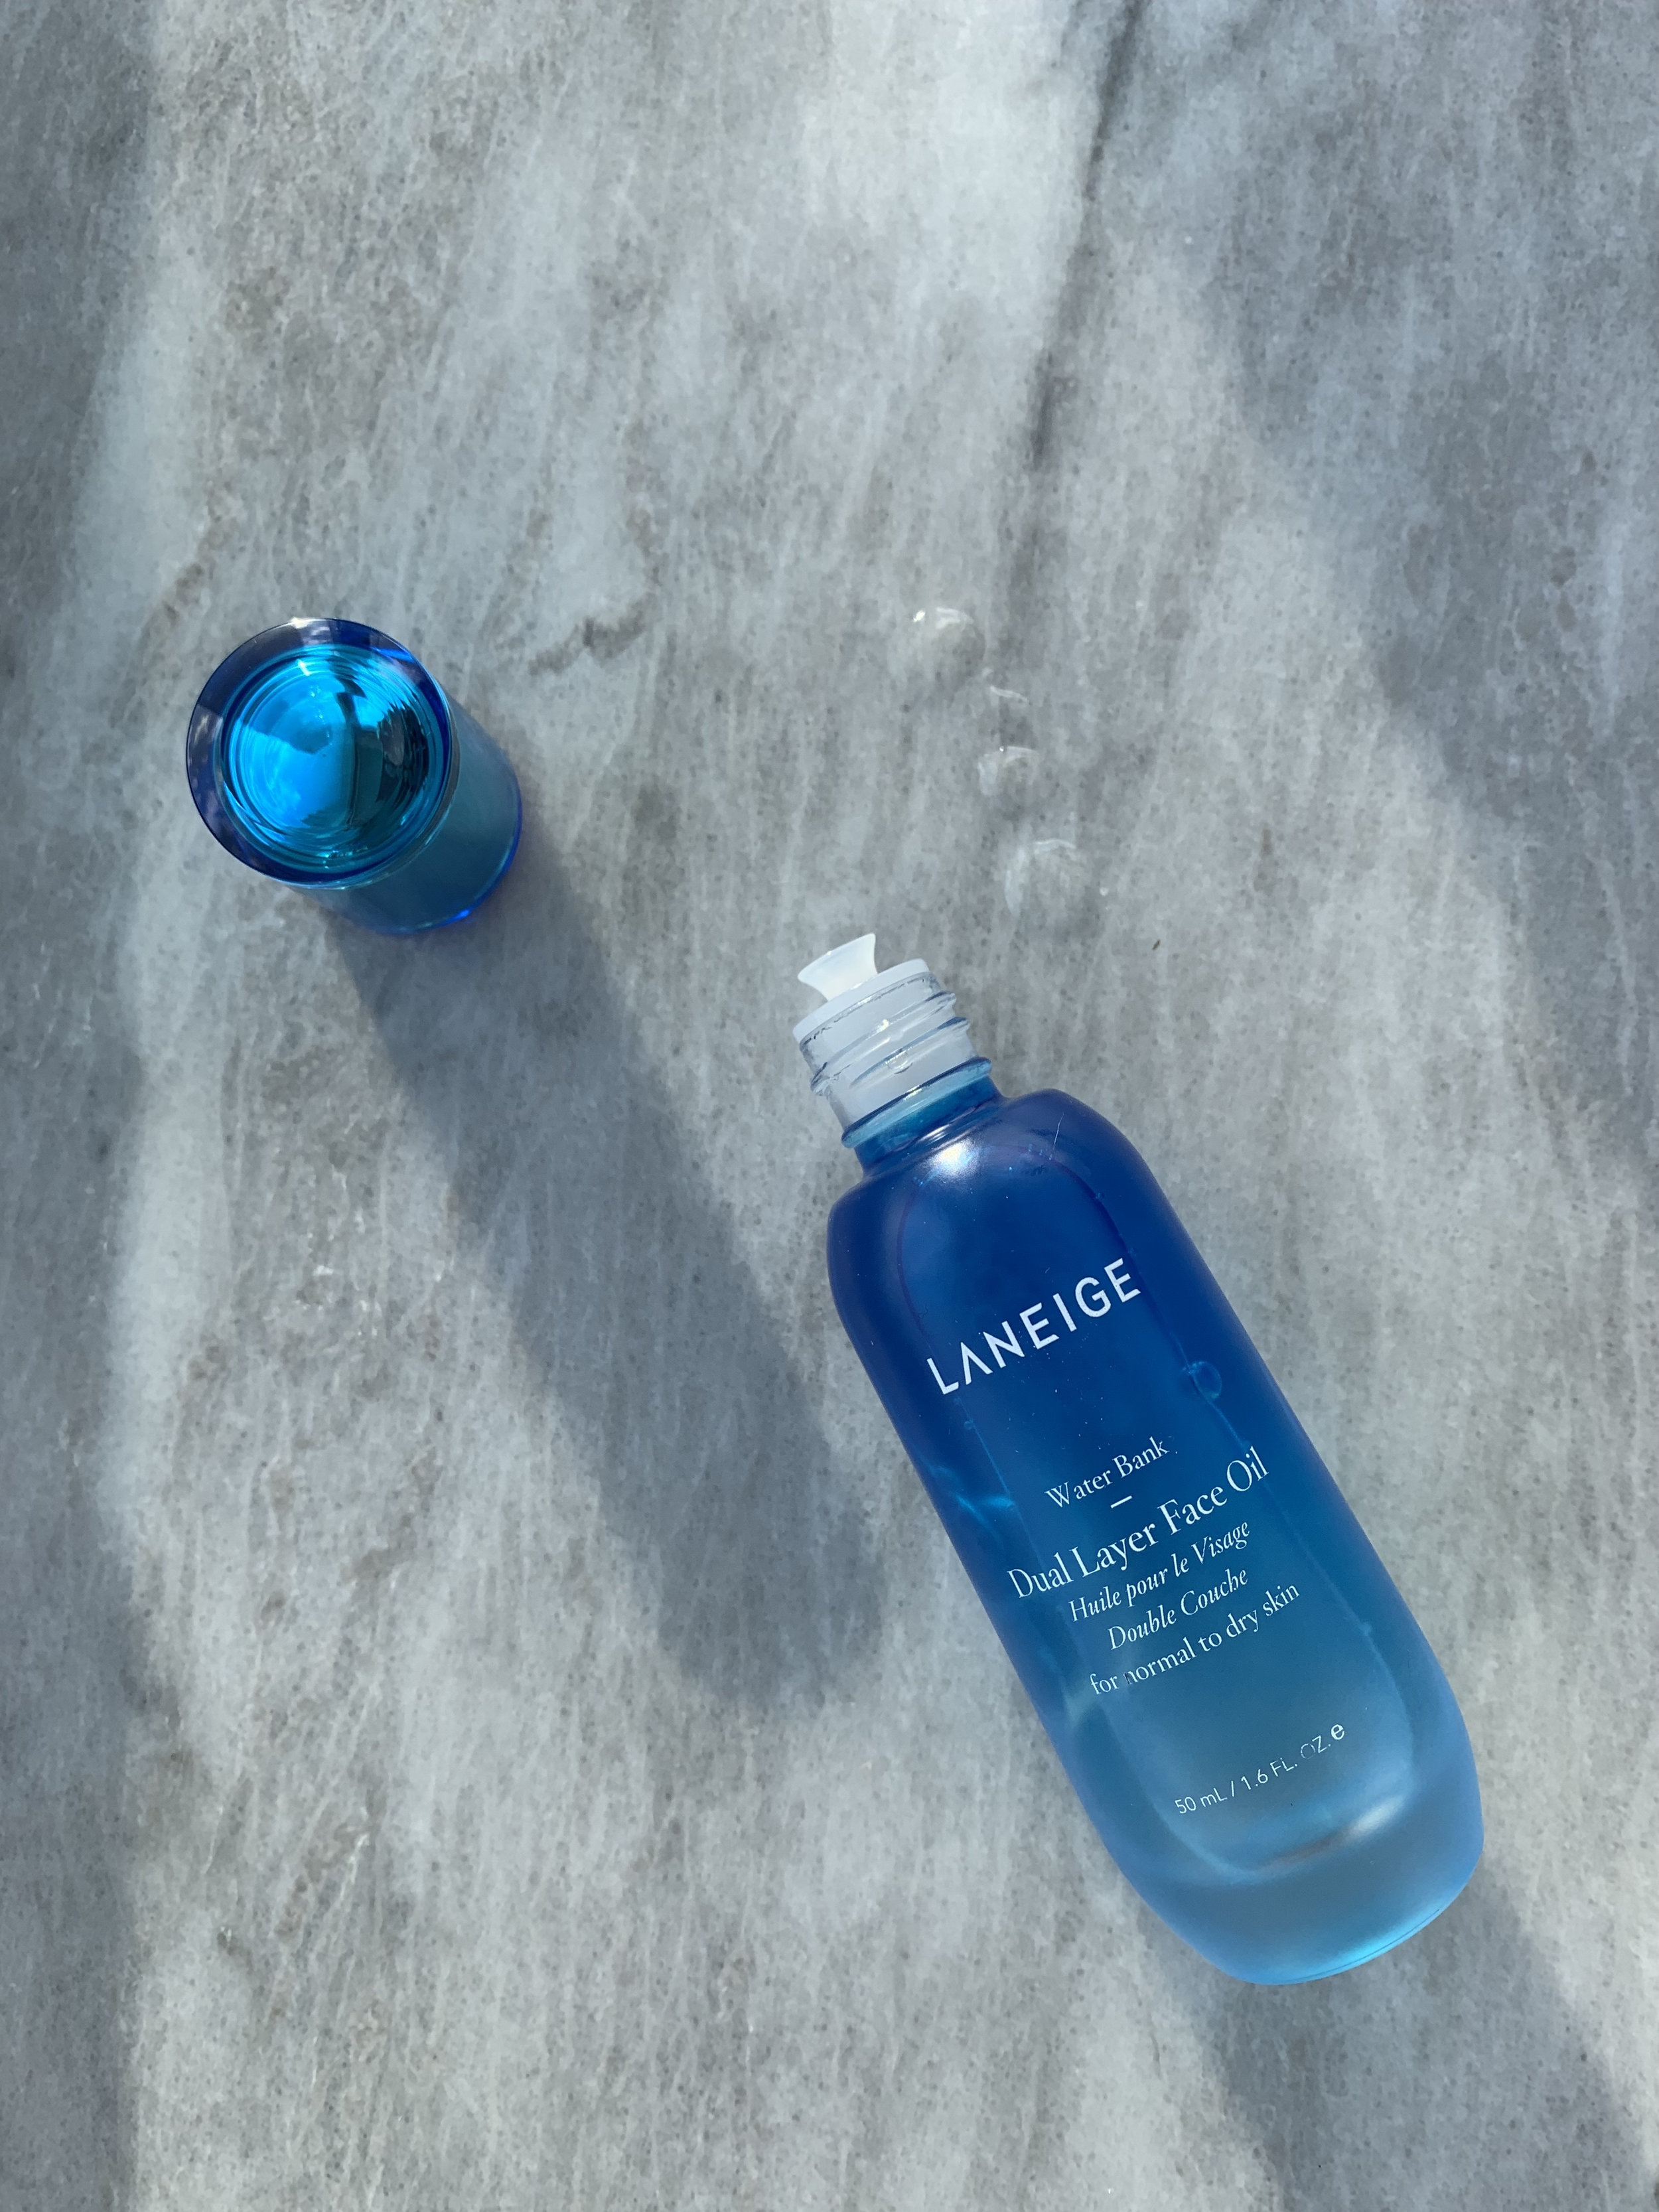 The Laneige Water Bank facial oil is so lightweight, it's ideal for oilier skin in the cold.